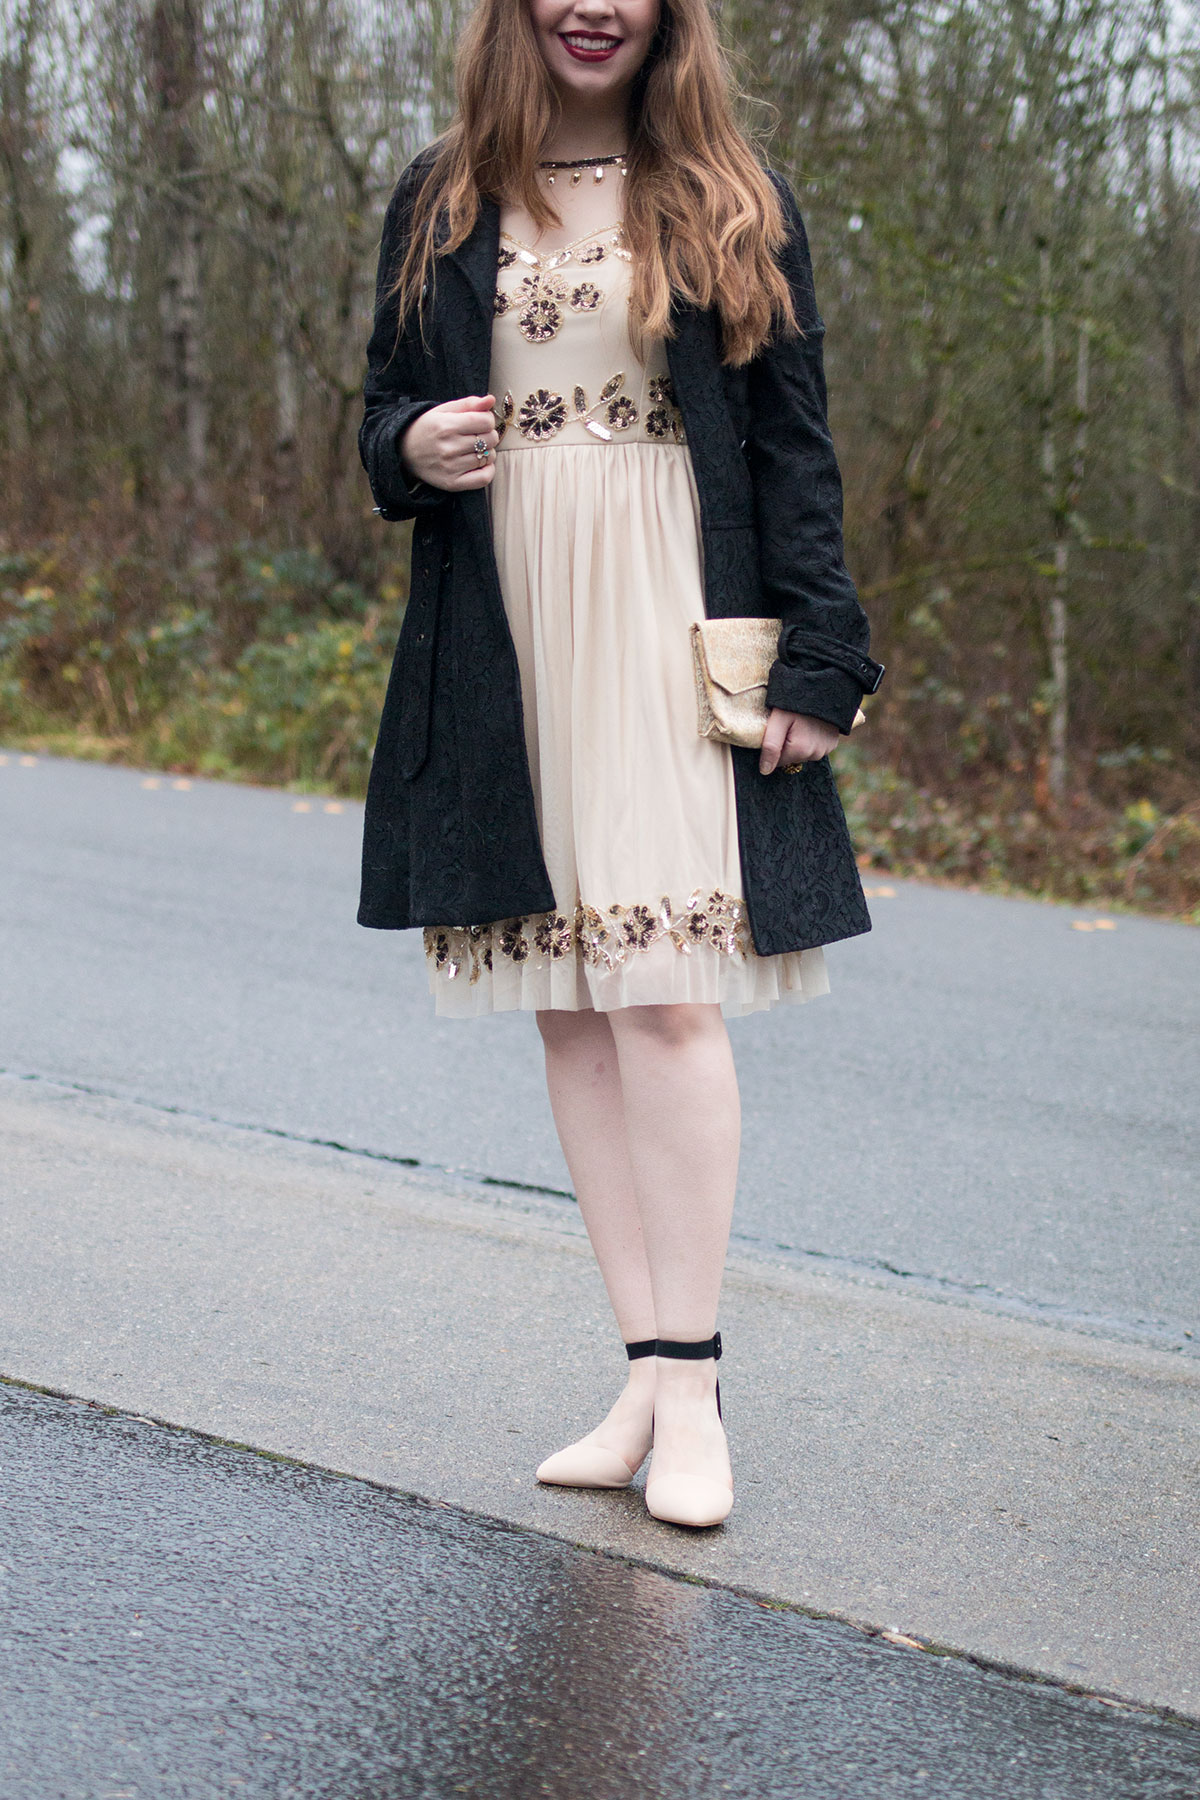 New Year Outfit Ideas: Lace Trench Coat and Frock & Frill Embellished Skater Dress Outfit // hellorigby seattle fashion & beauty blog